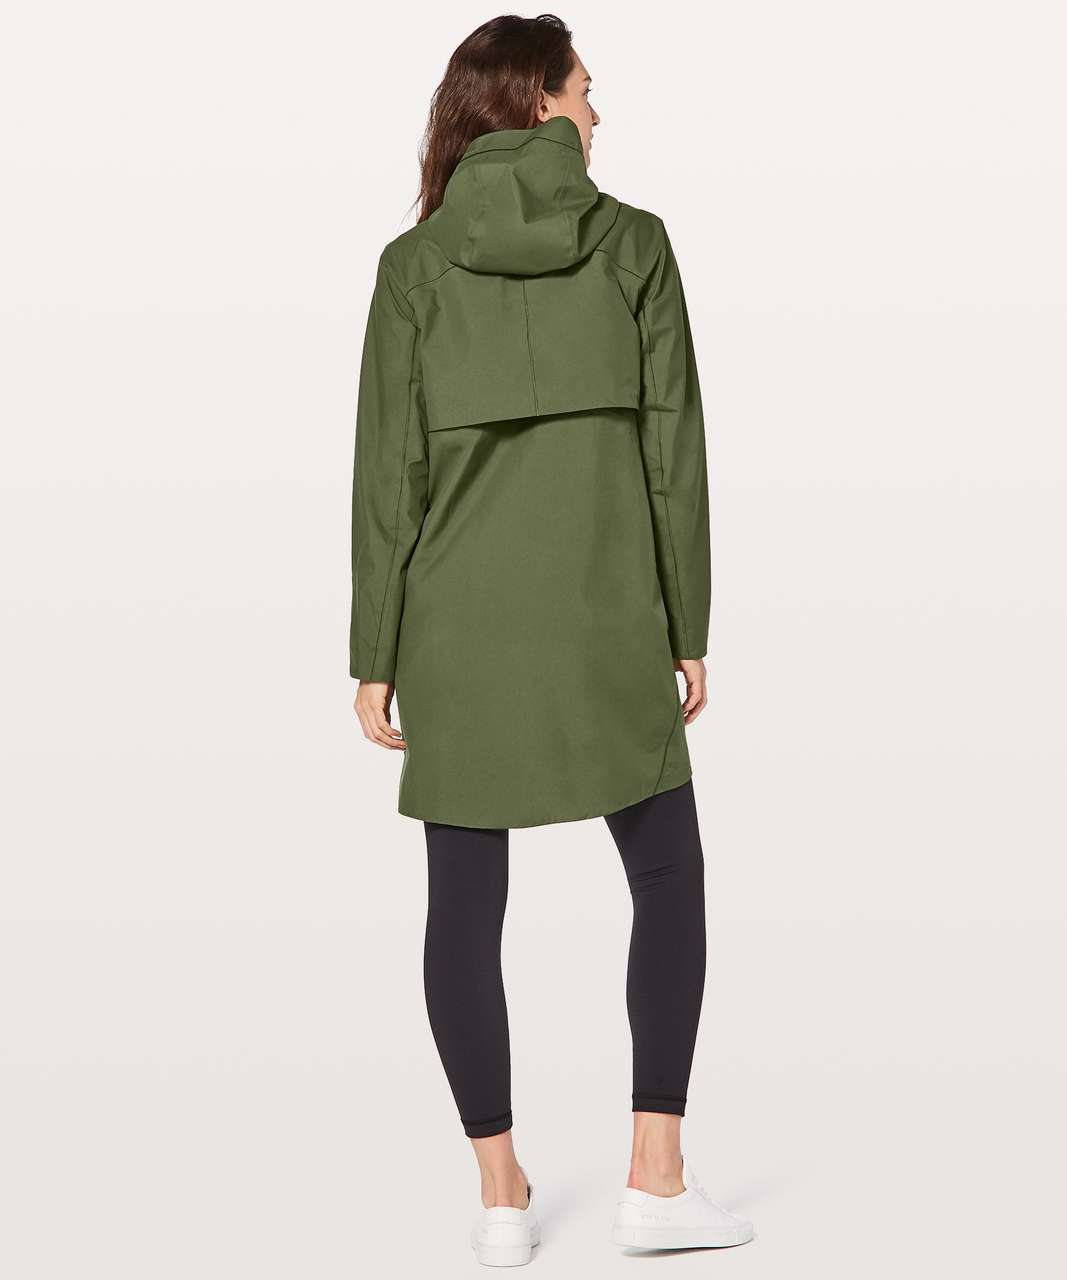 Lululemon Cloud Crush Jacket - Pesto